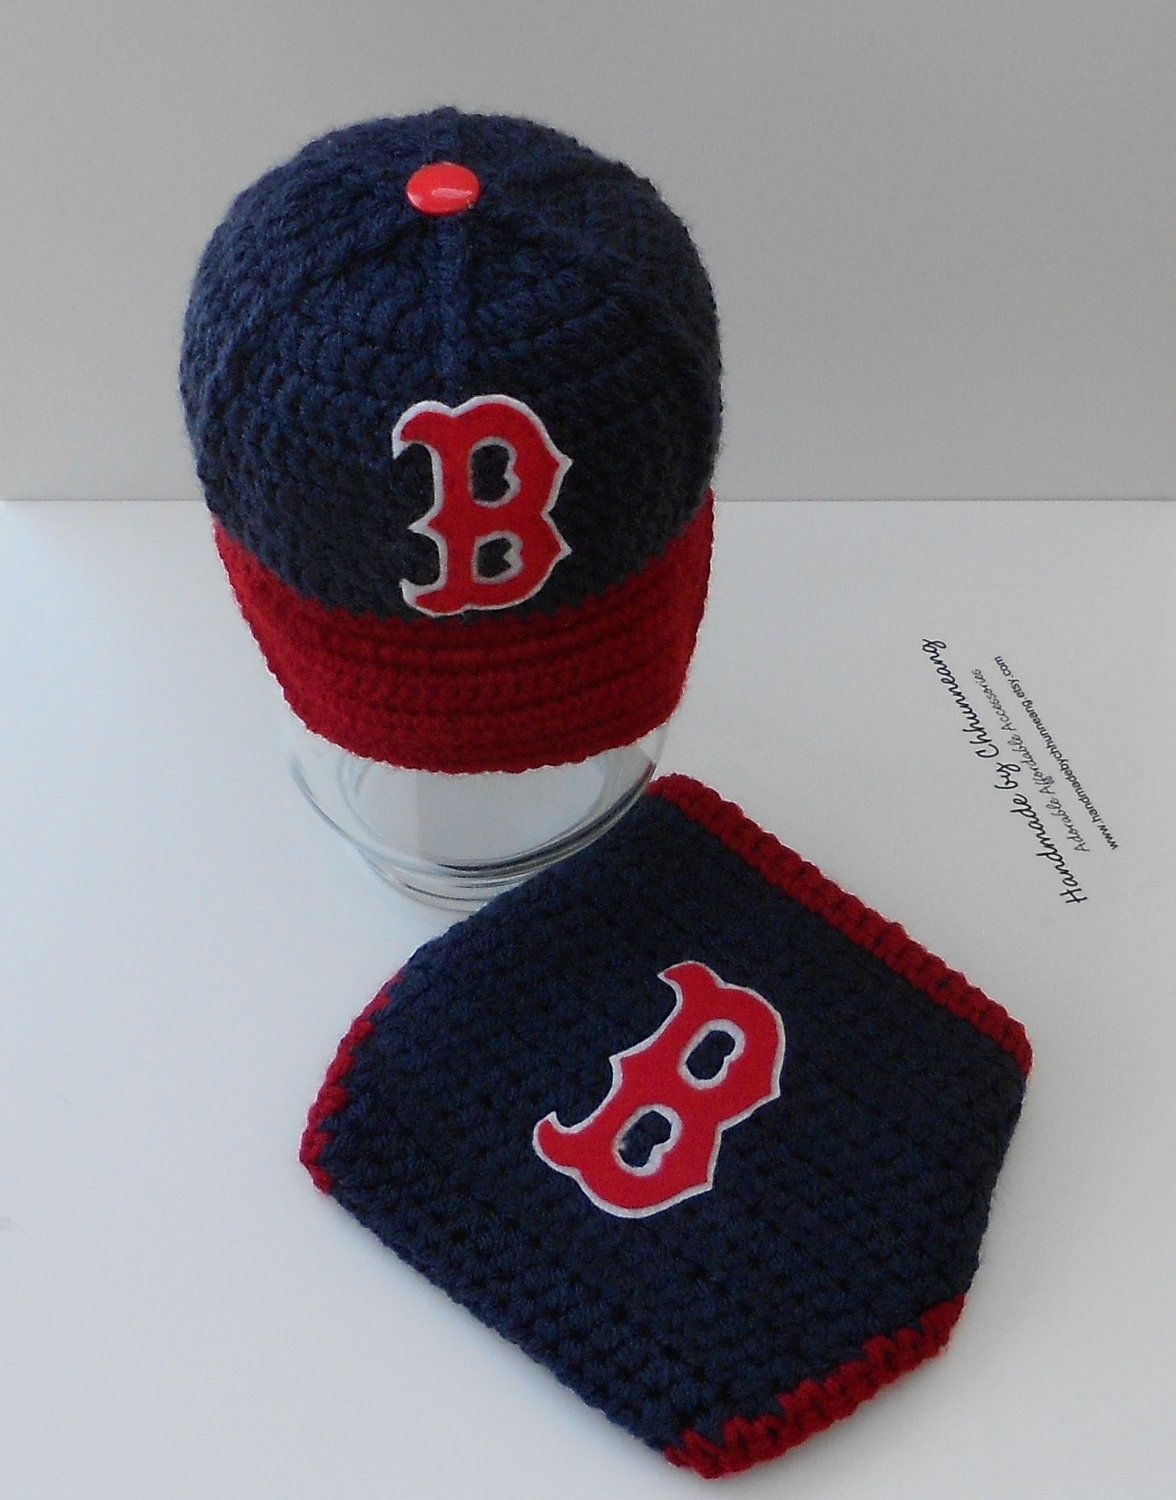 99a42fdd1f6 Boston Red Sox Crochet Baby Baseball Cap and Diaper Set by  handmadebychhunneang